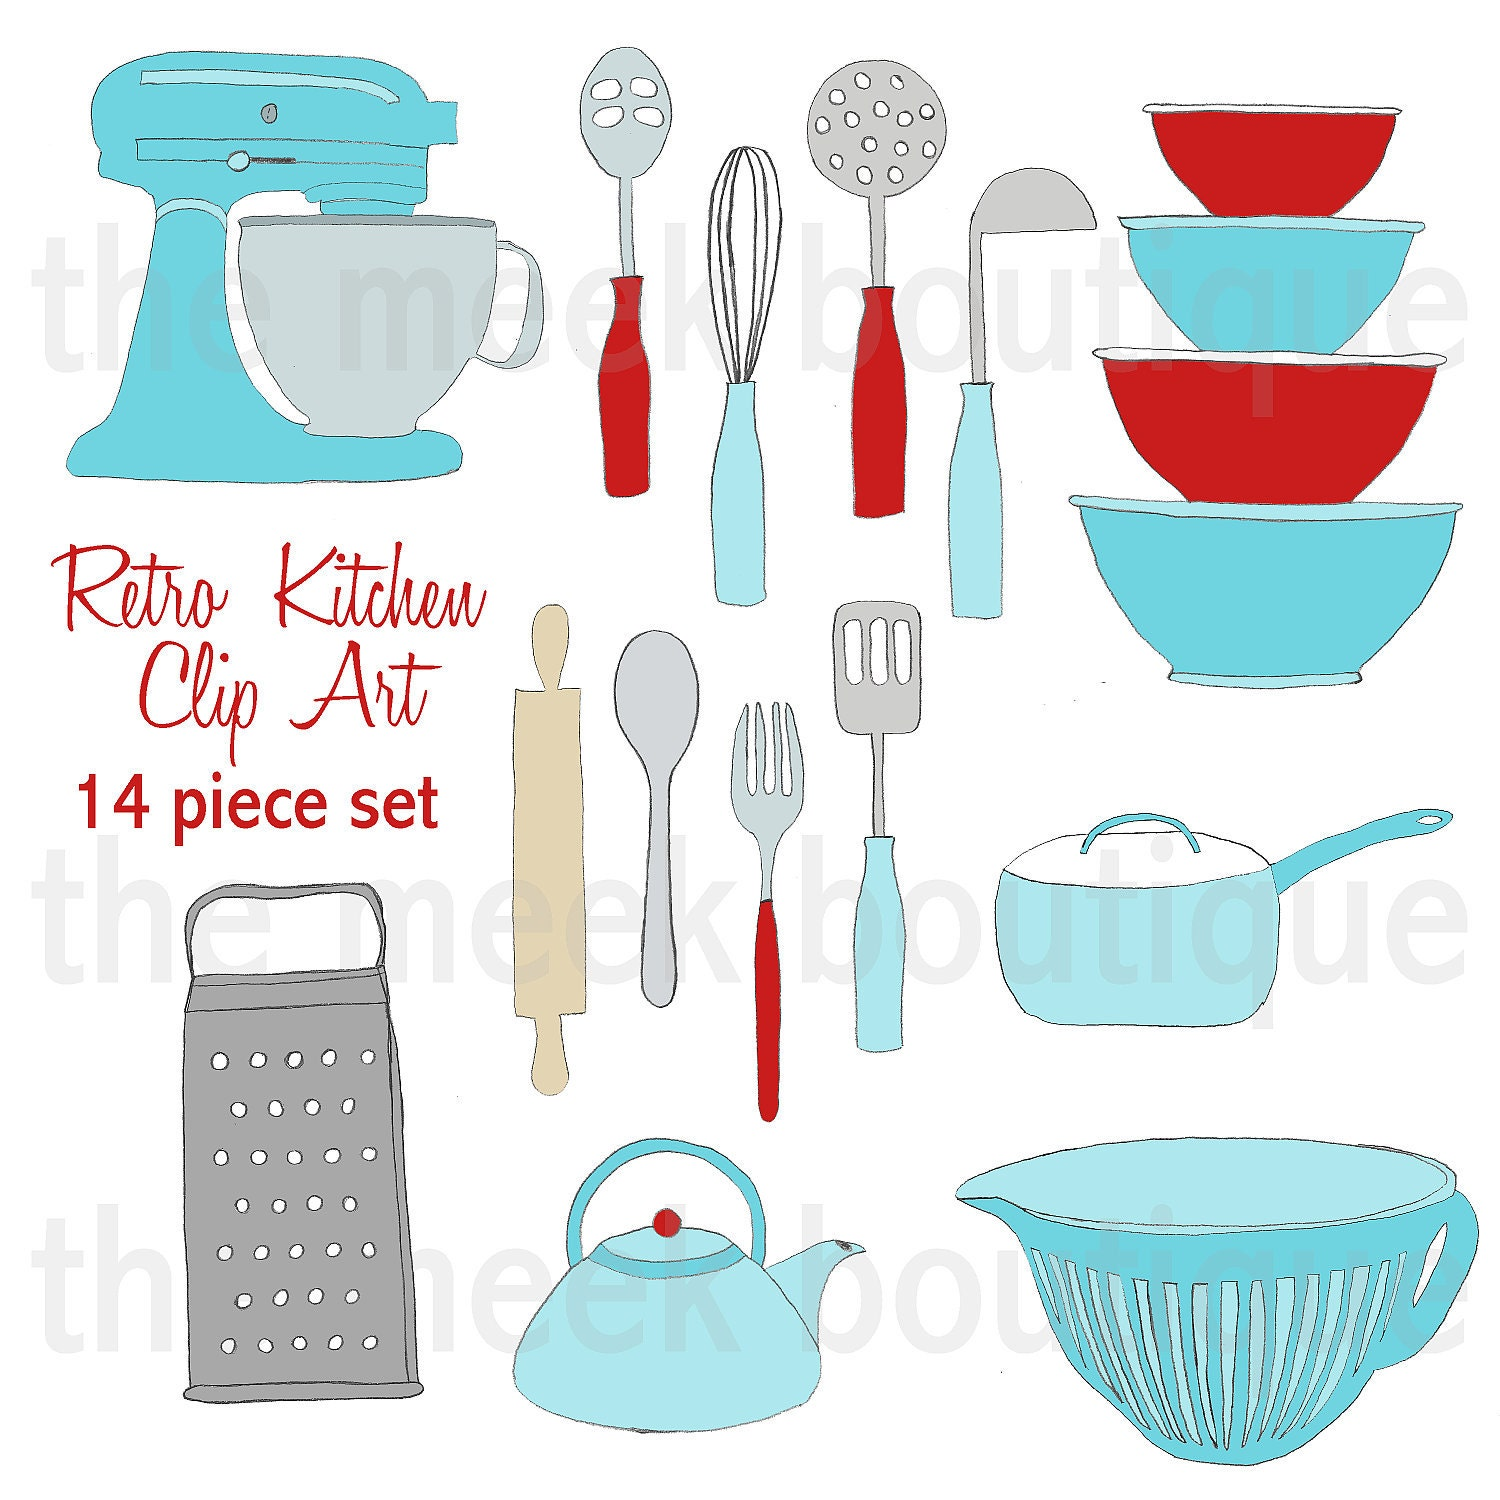 INSTANT DOWNLOAD Retro Kitchen Clip Art Set